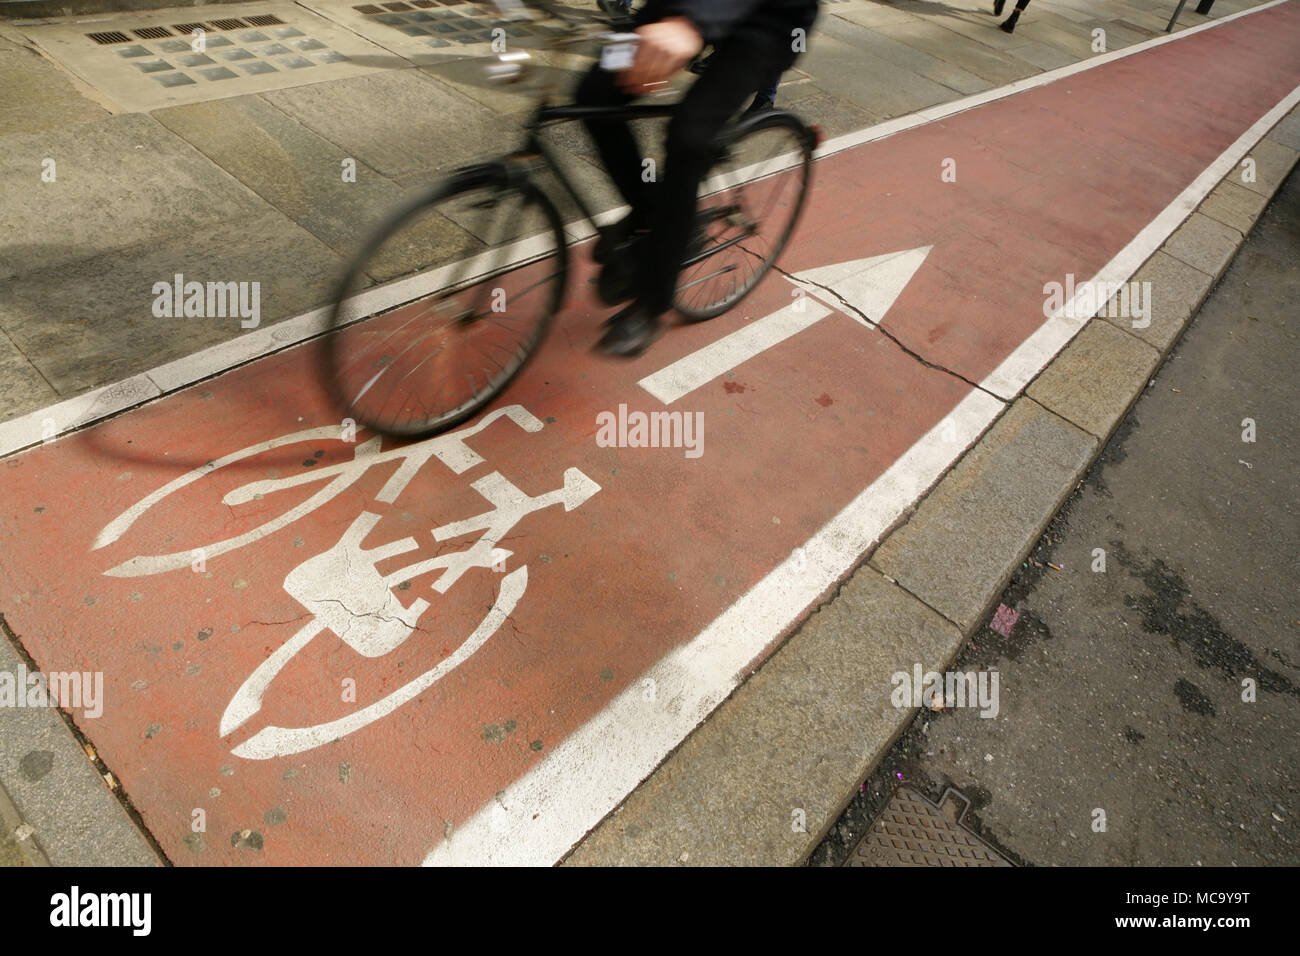 Cyclist going the wrong way on segregated cycle route. - Stock Image